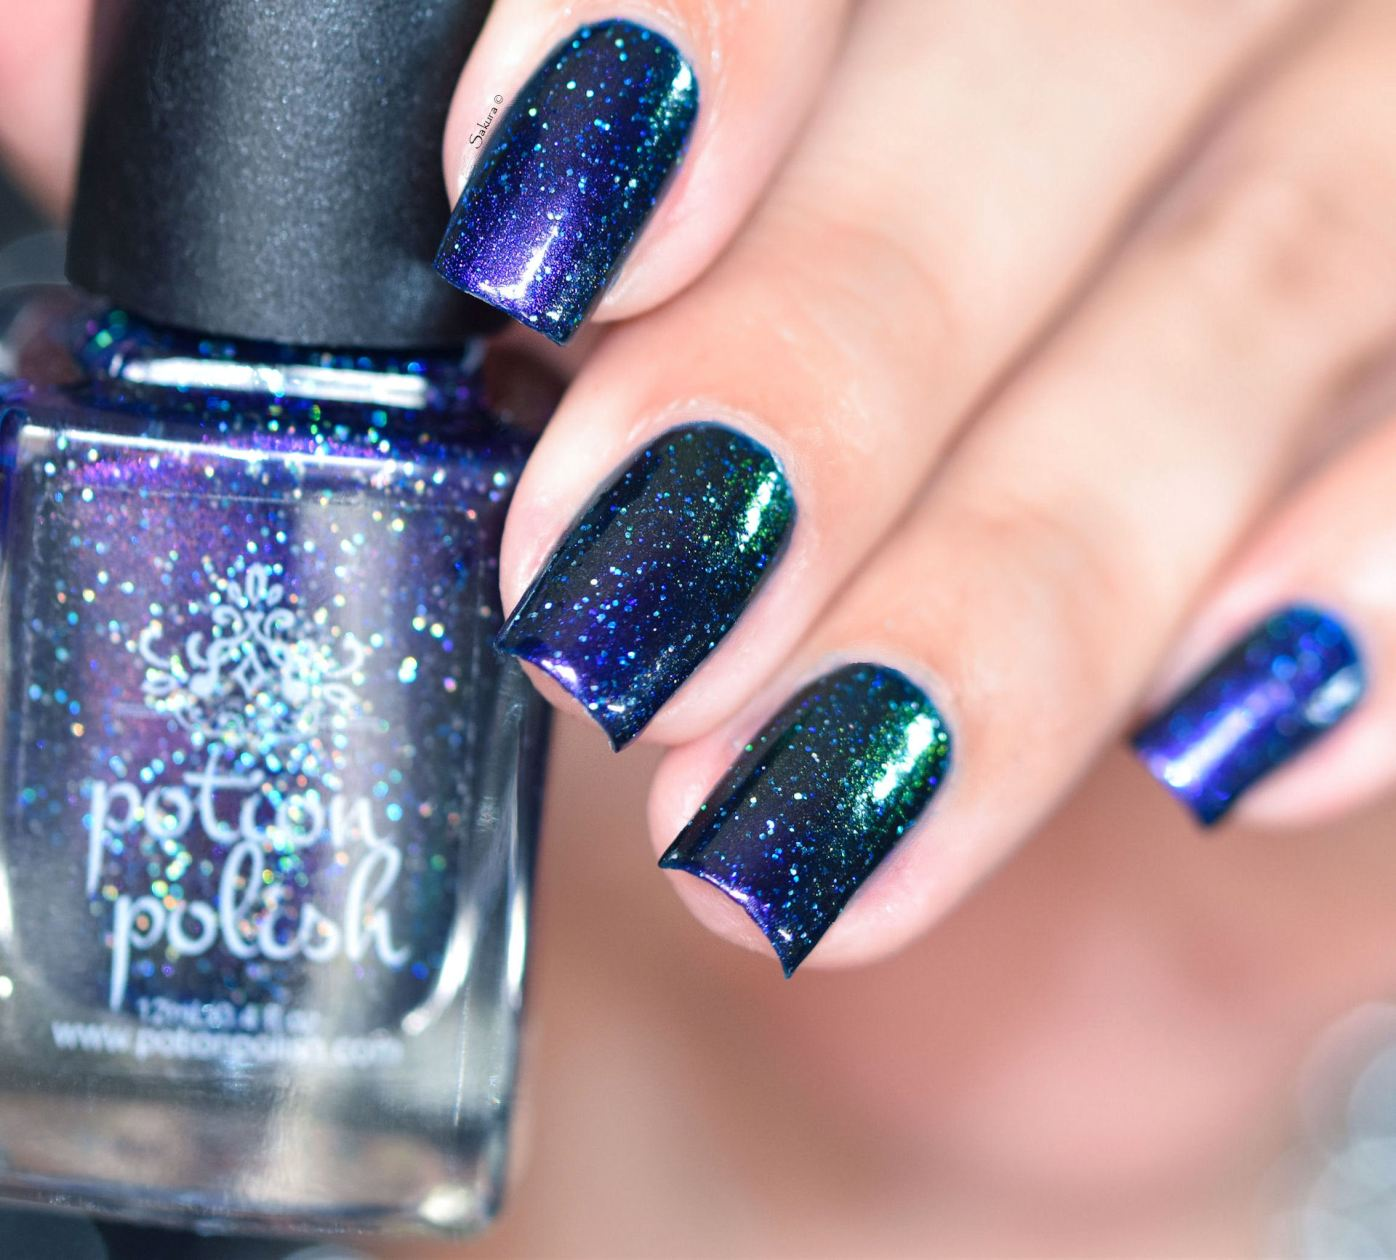 POTION POLISH DOSE OF EUPHORIA 2